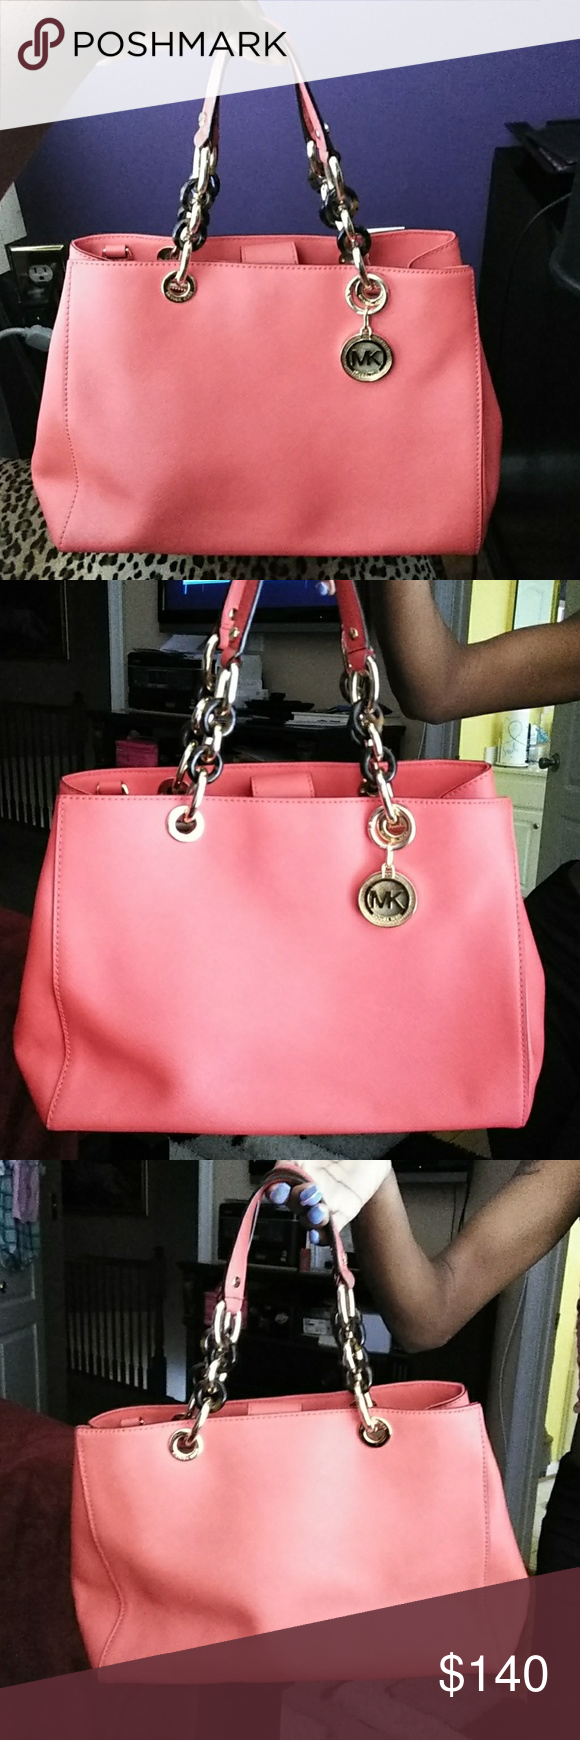 f40417619936 Michael Kors Cynthia Michael Kors Cynthia Medium Saffiano Leather Satchel  in Red. I ve